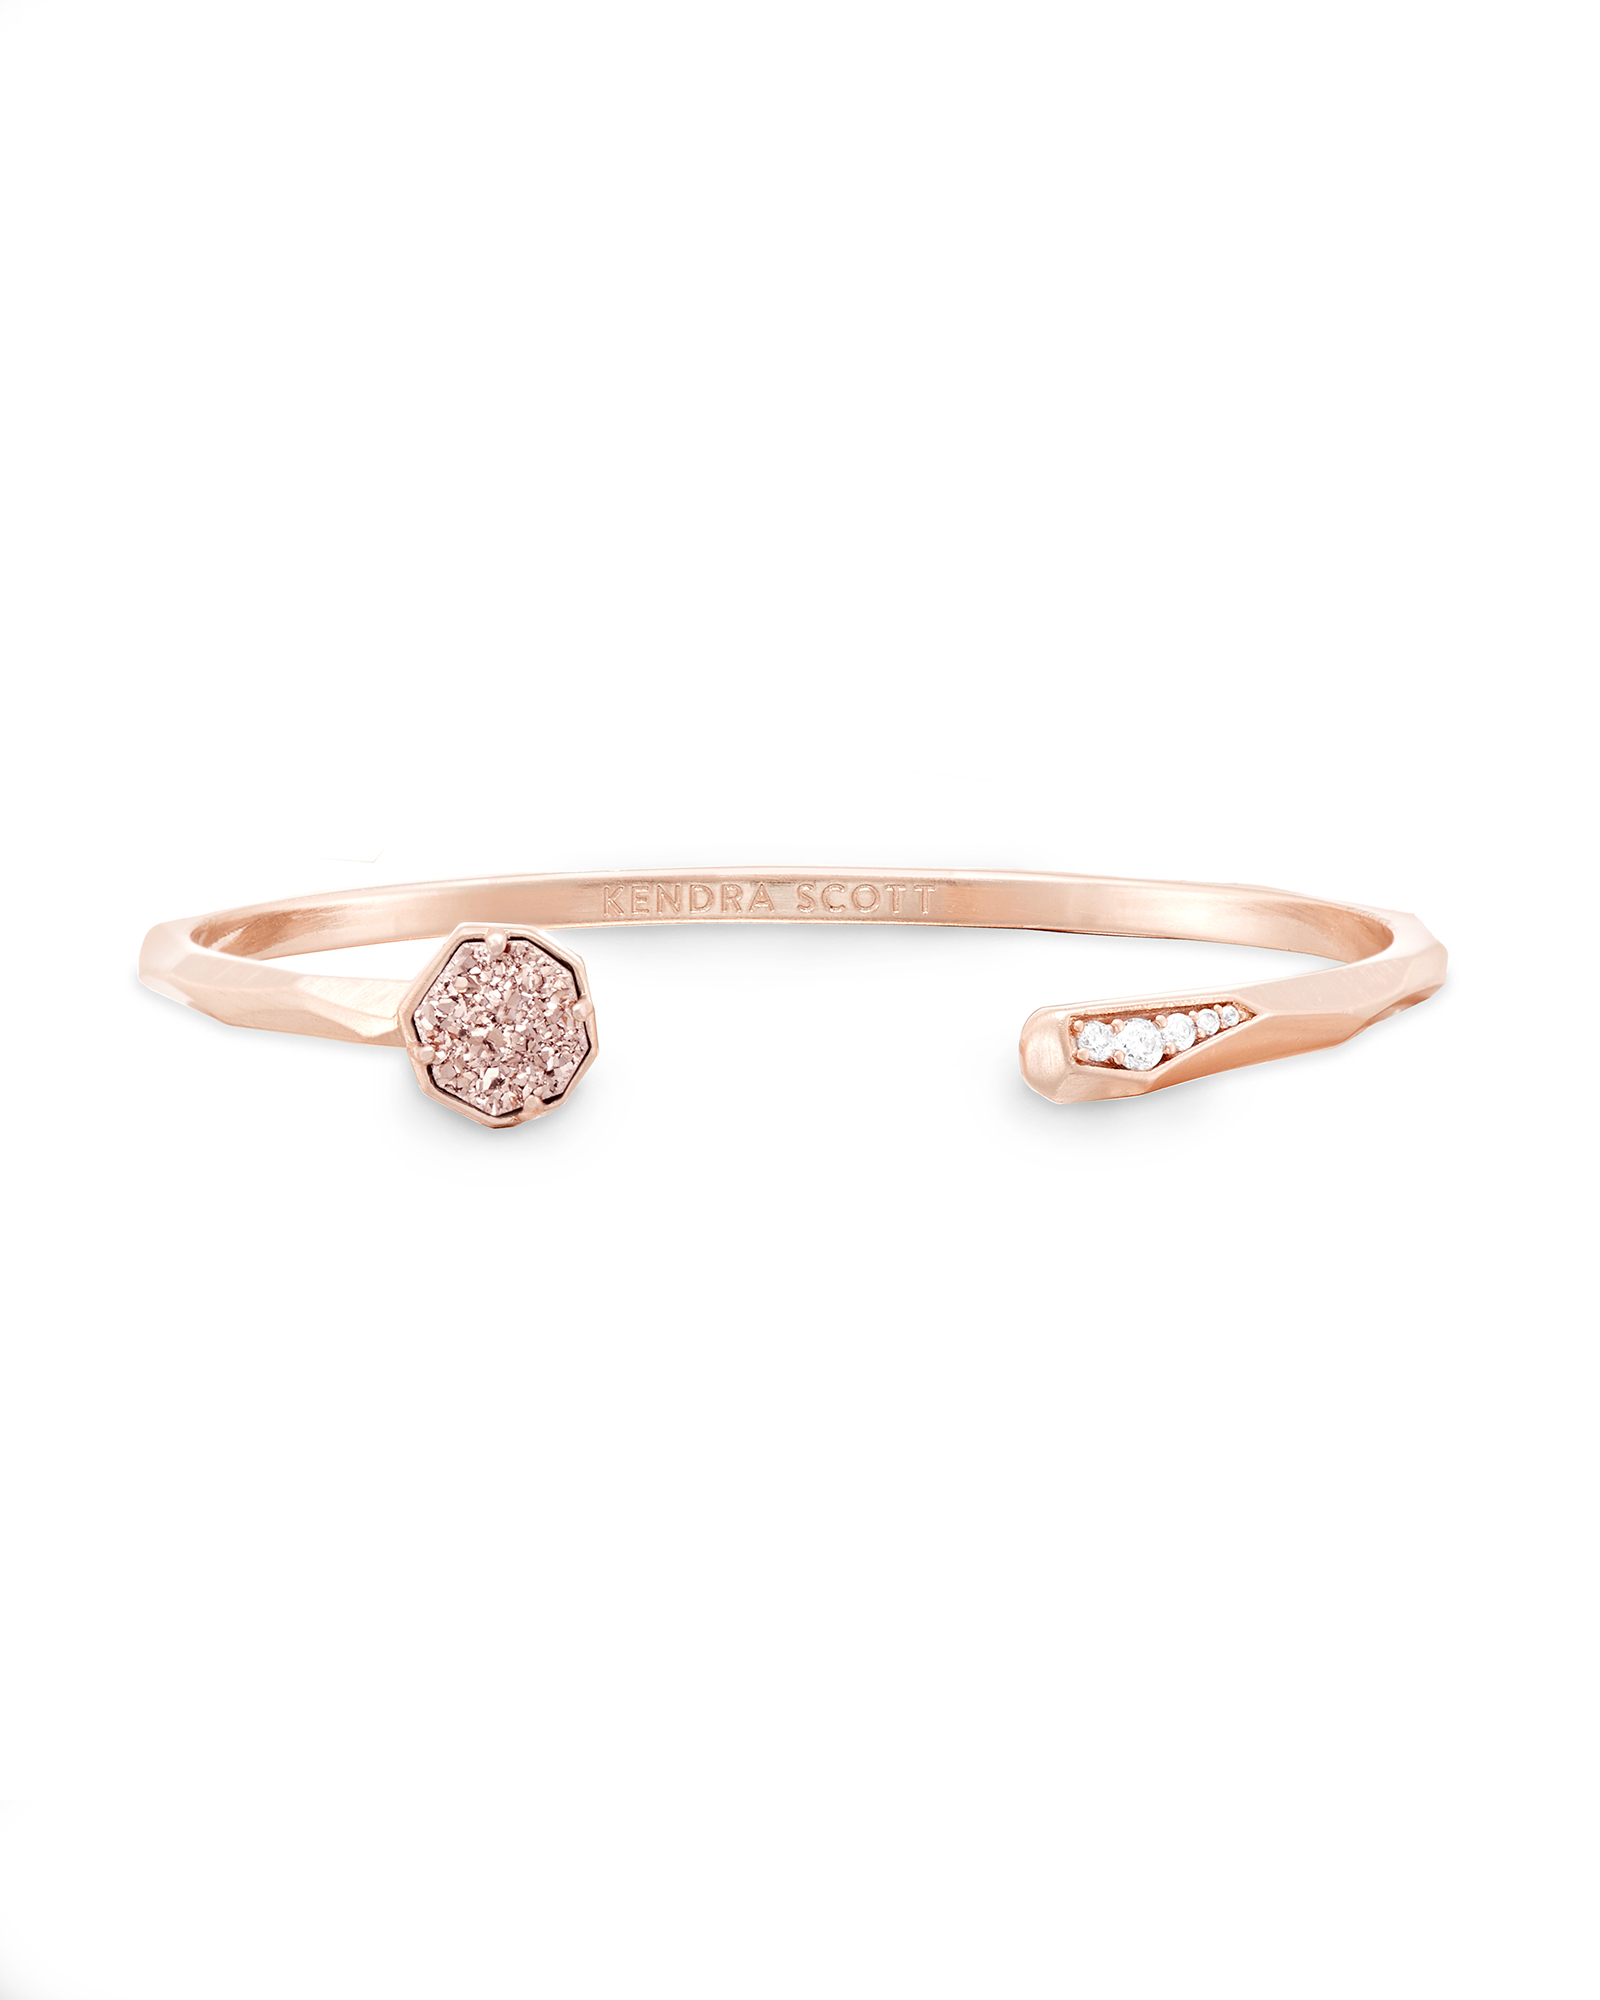 Ashlee Pinch Bracelet in Rose Gold Drusy